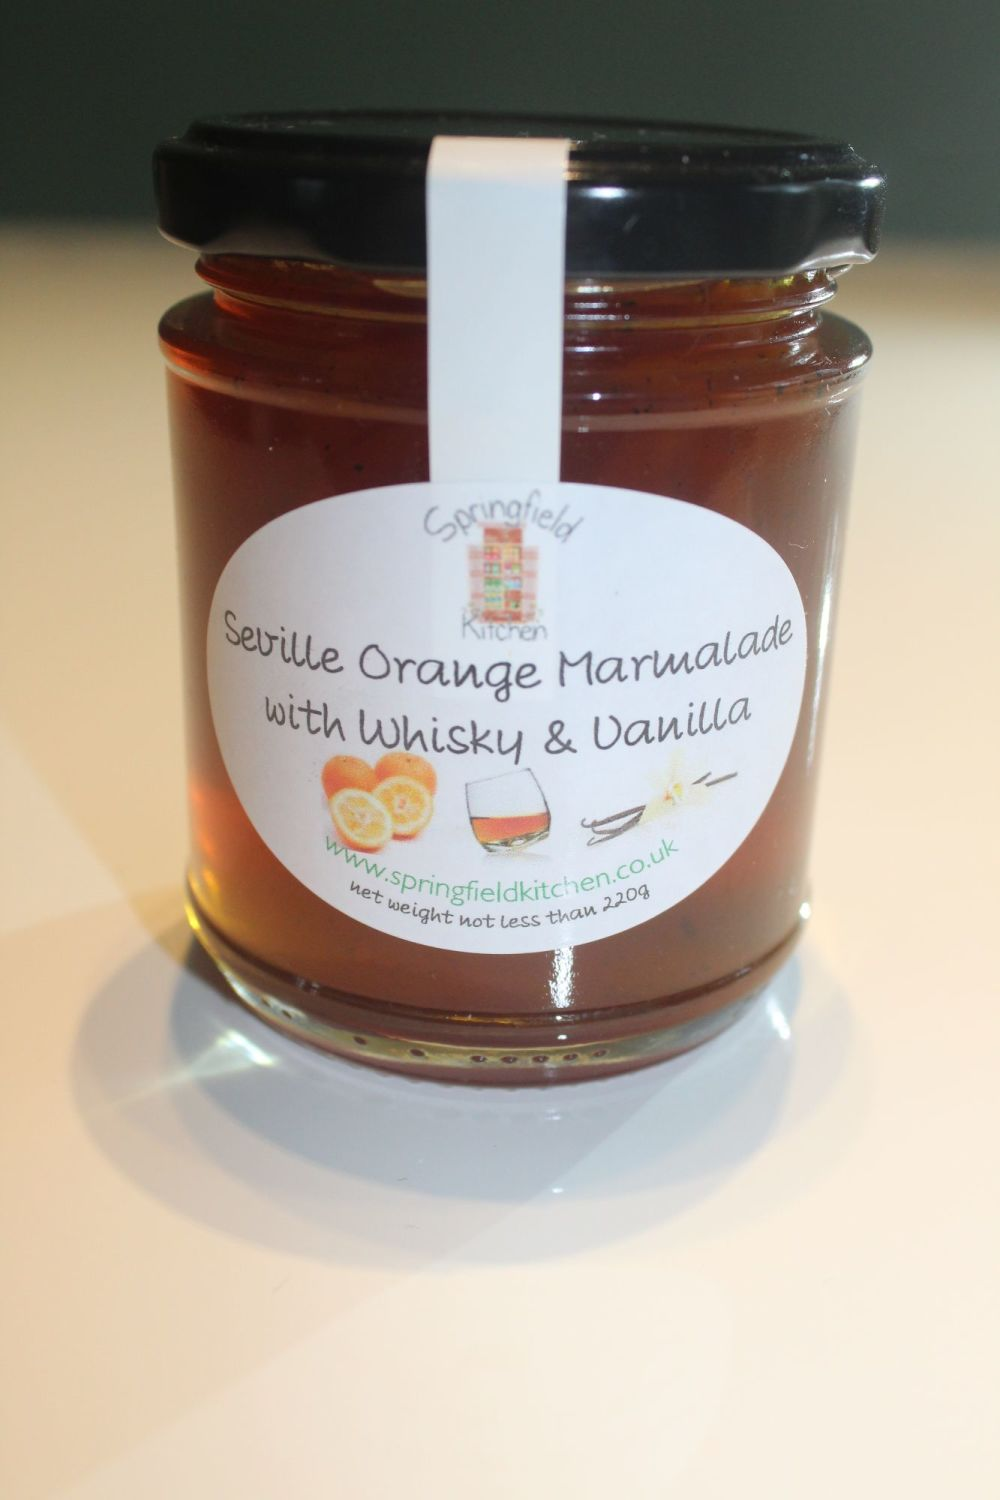 Seville Orange Marmalade with Whisky and Vanilla